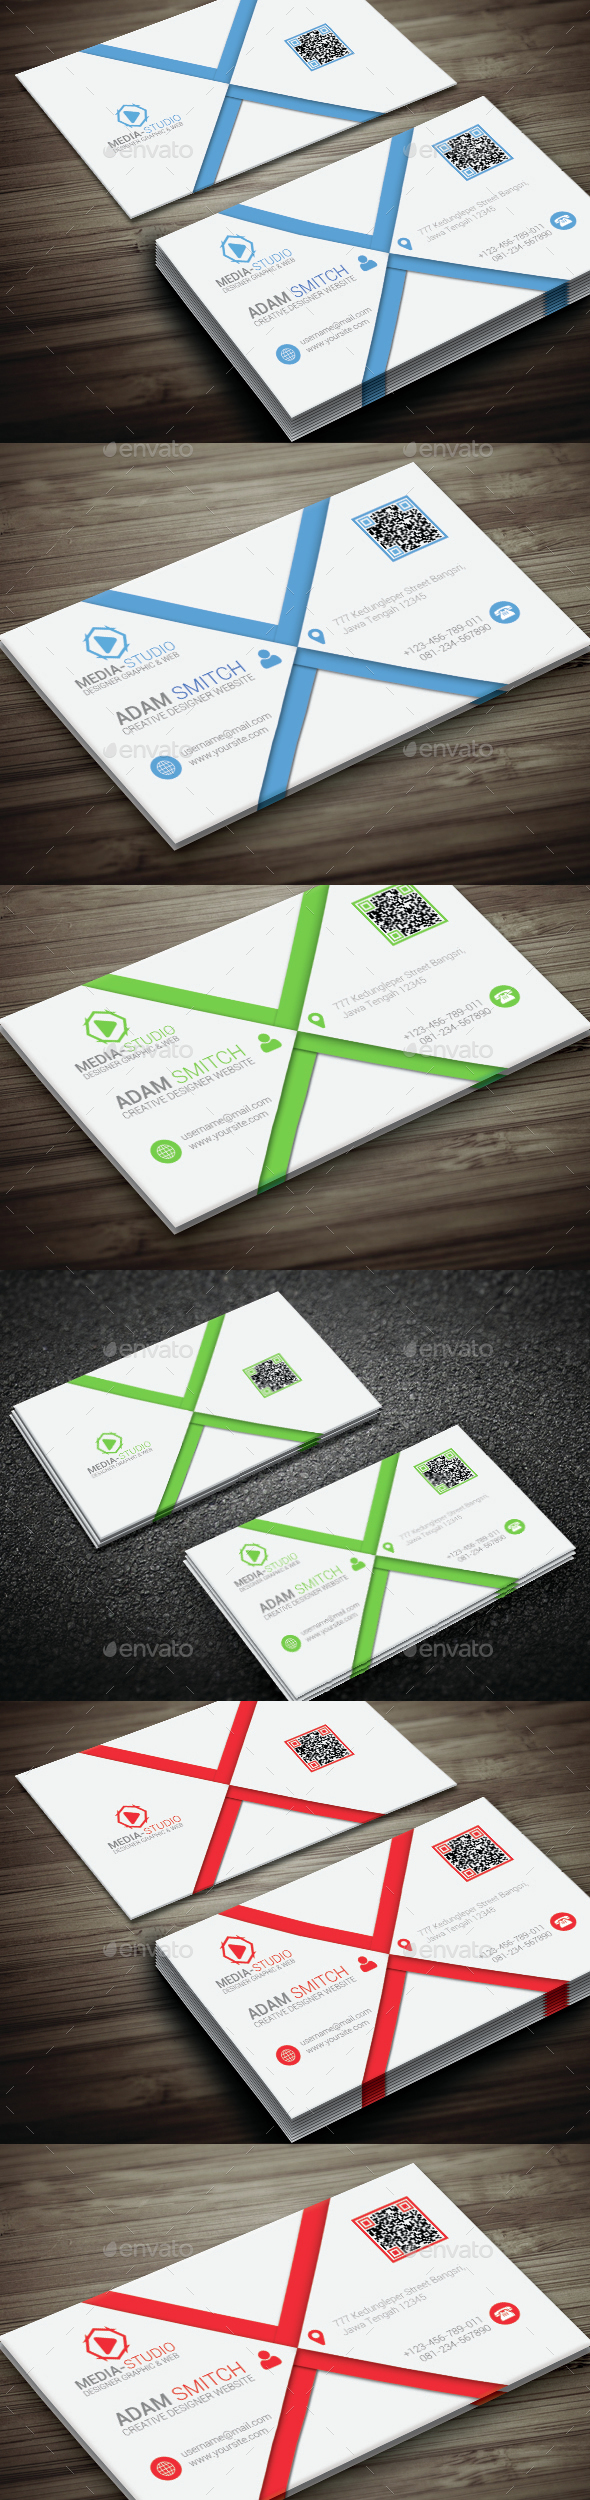 Style Corporate Business Card - Corporate Business Cards